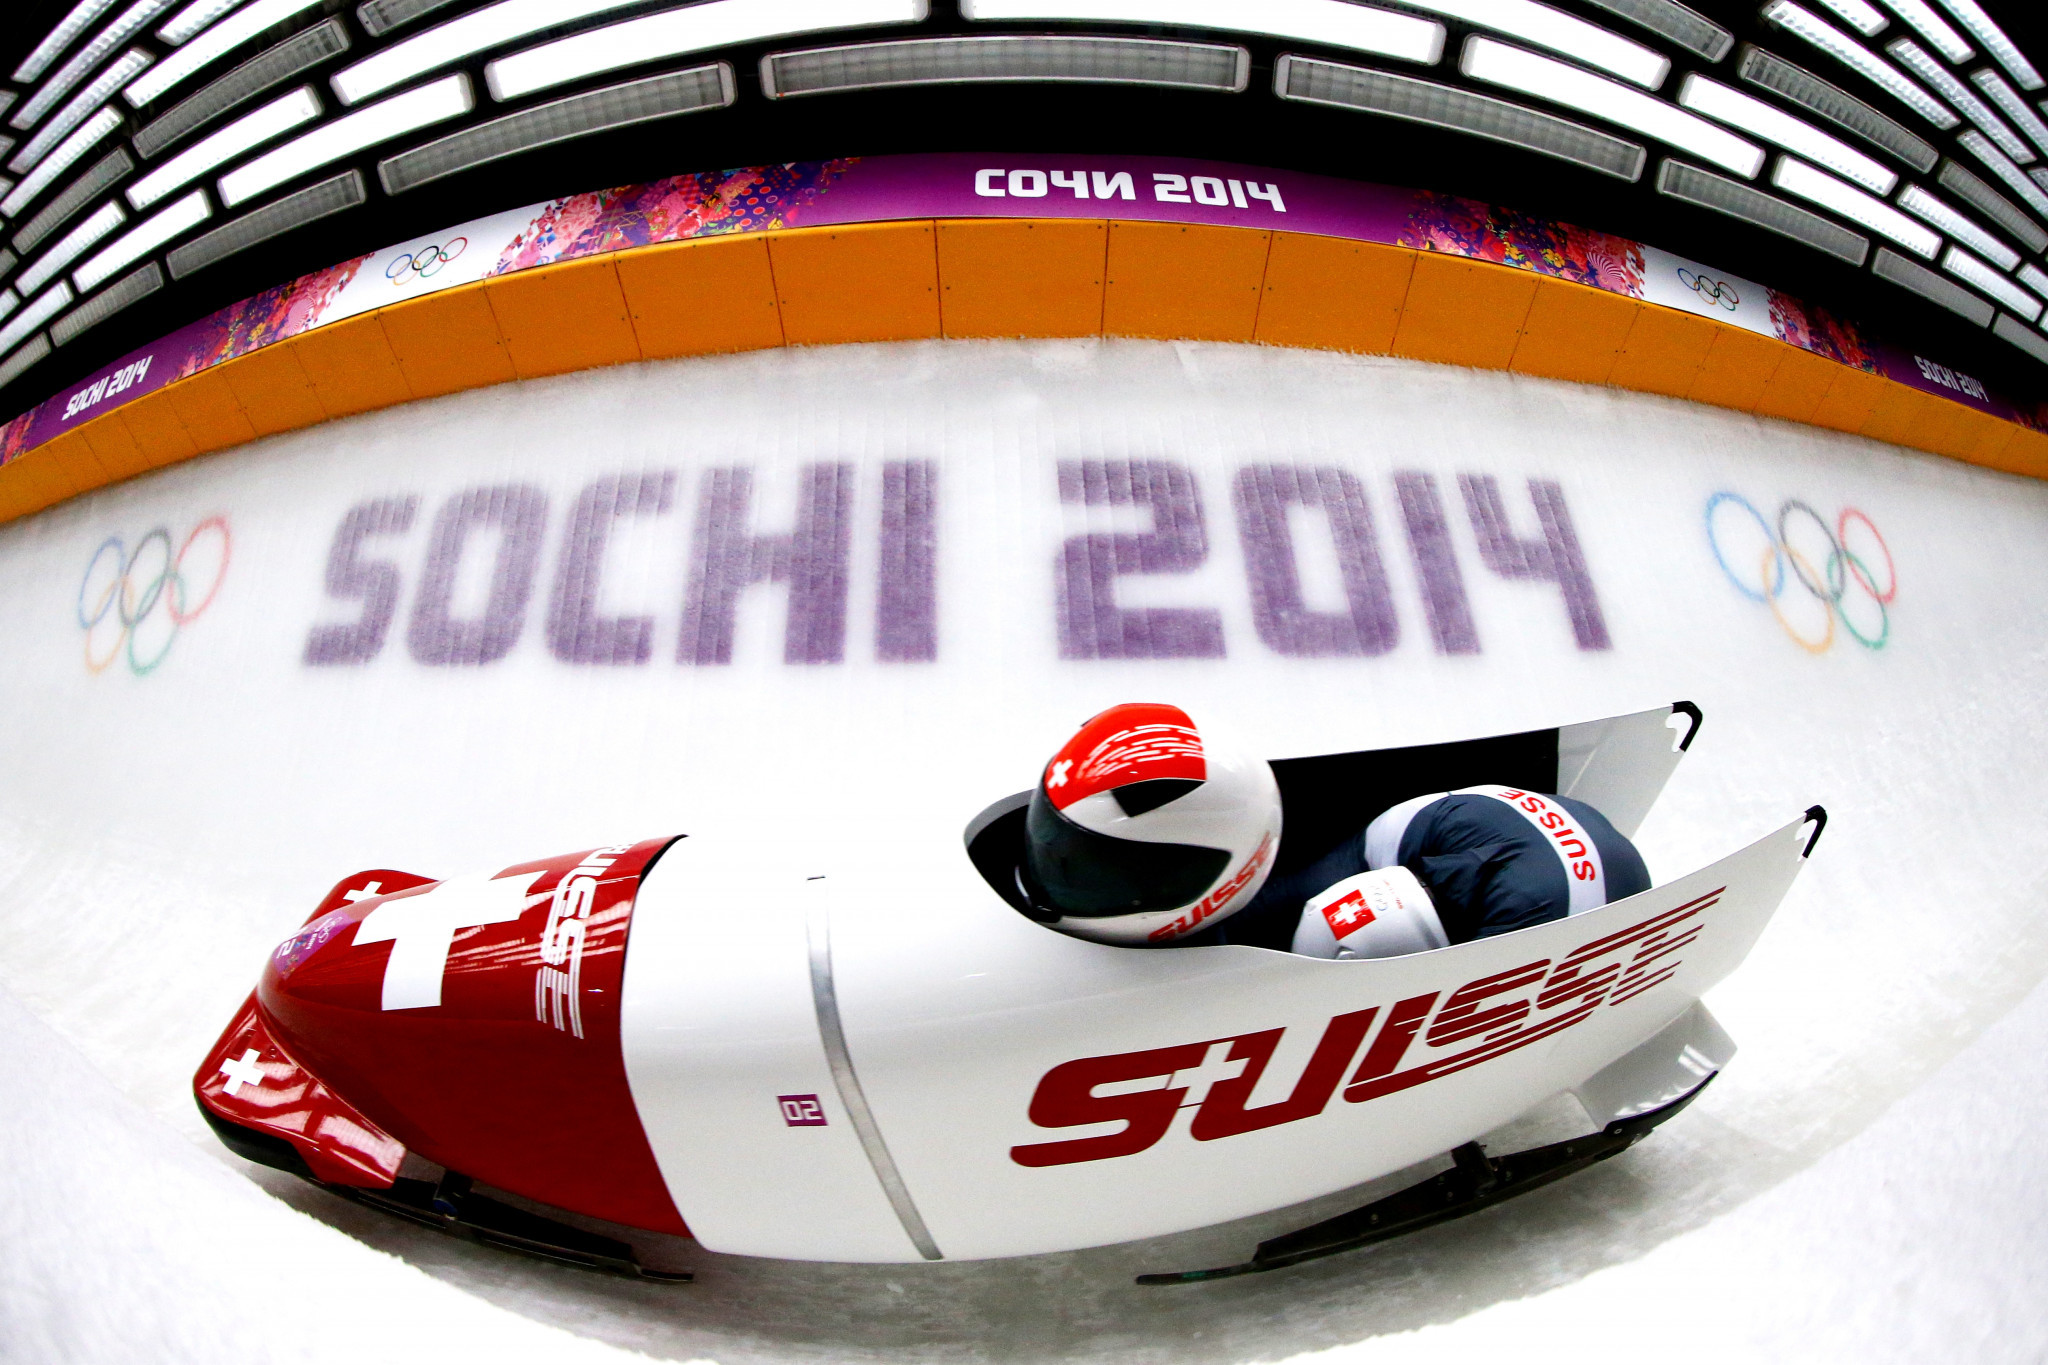 Switzerland's Beat Hefti and Alex Baumann have finally been officially upgraded by the International Olympic Committee Executive Board from the silver to gold medal in the Sochi 2014 two-man bob ©Getty Images